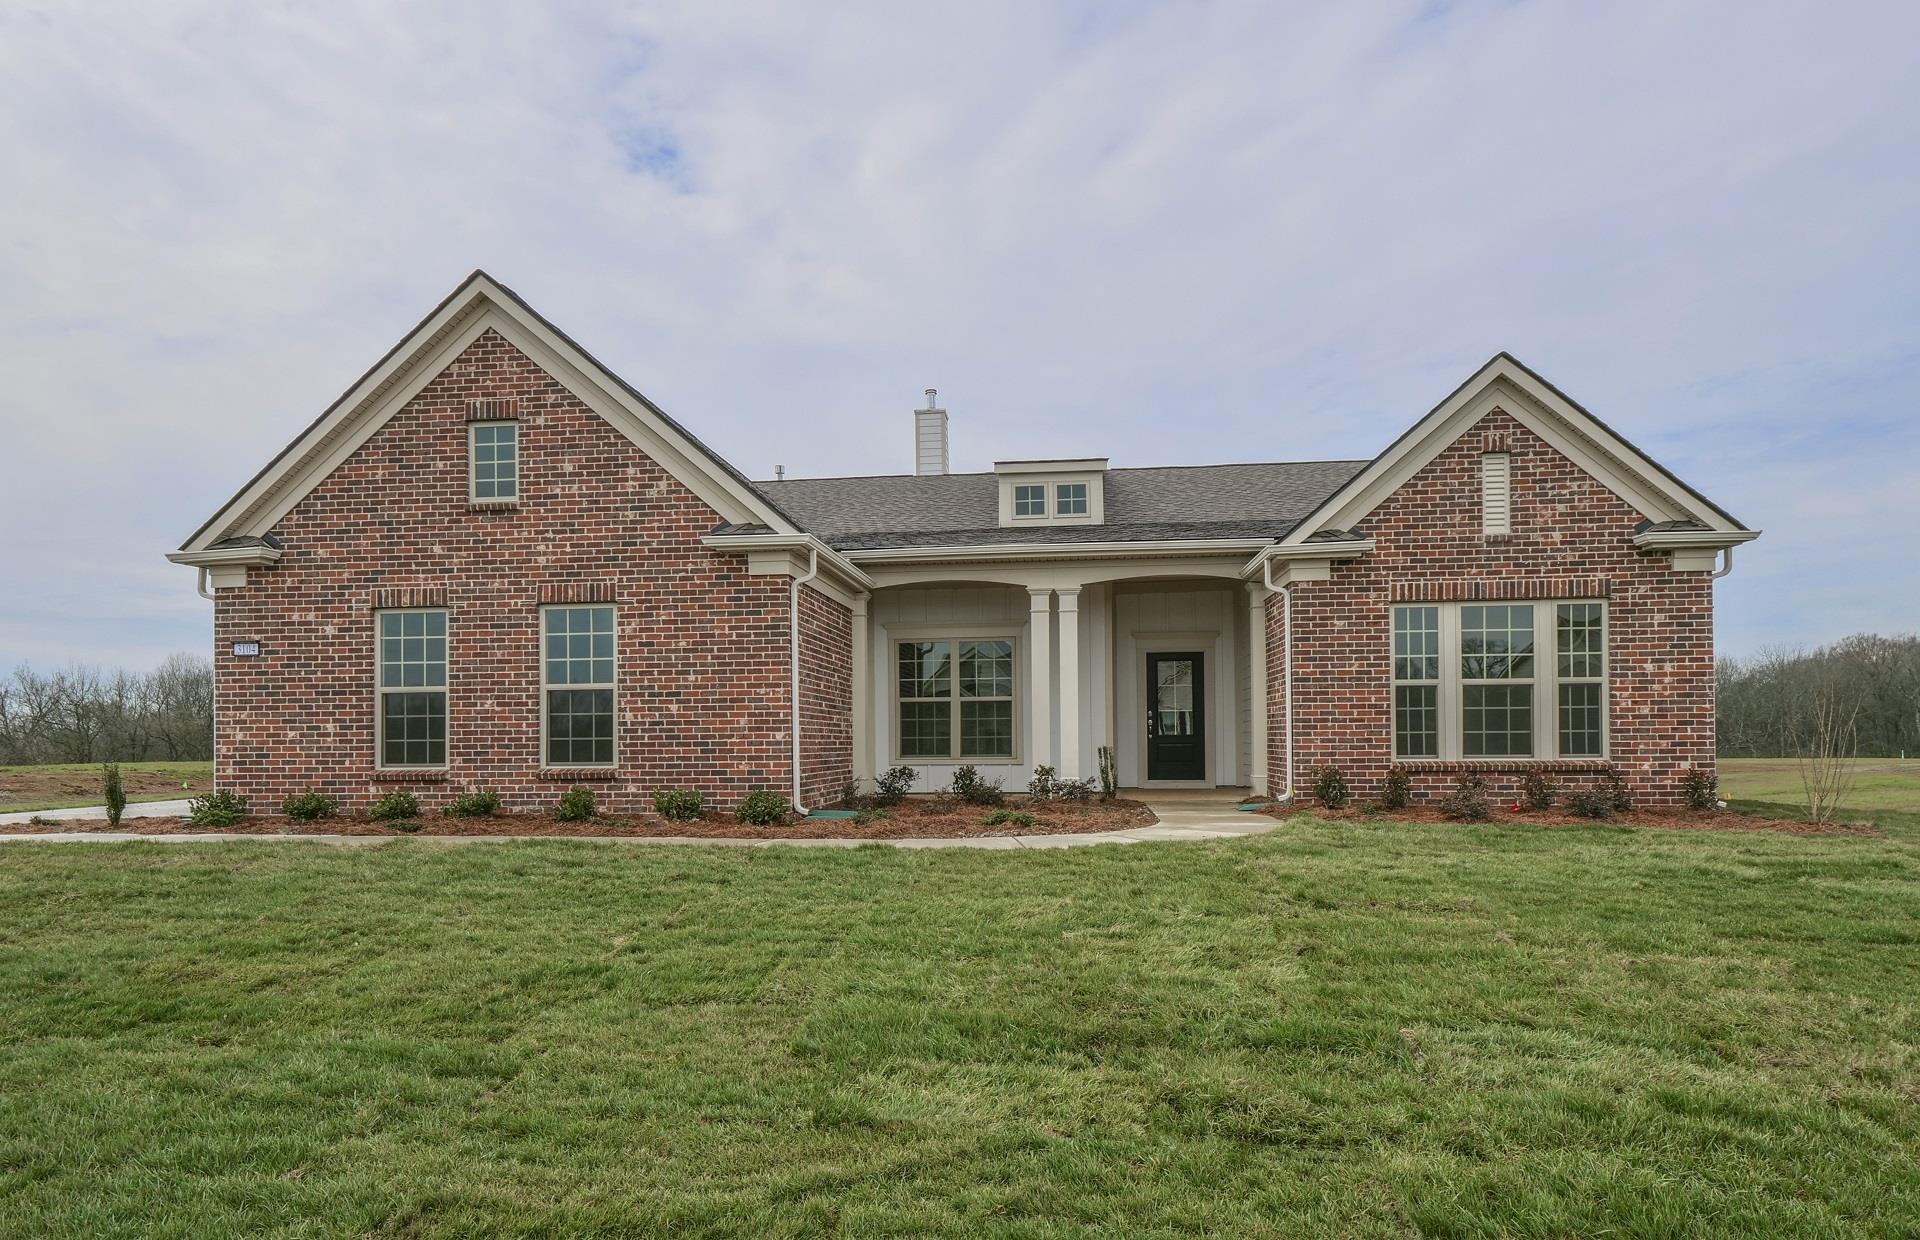 3014 Putnam Grove #301, Spring Hill, TN 37174 - Spring Hill, TN real estate listing